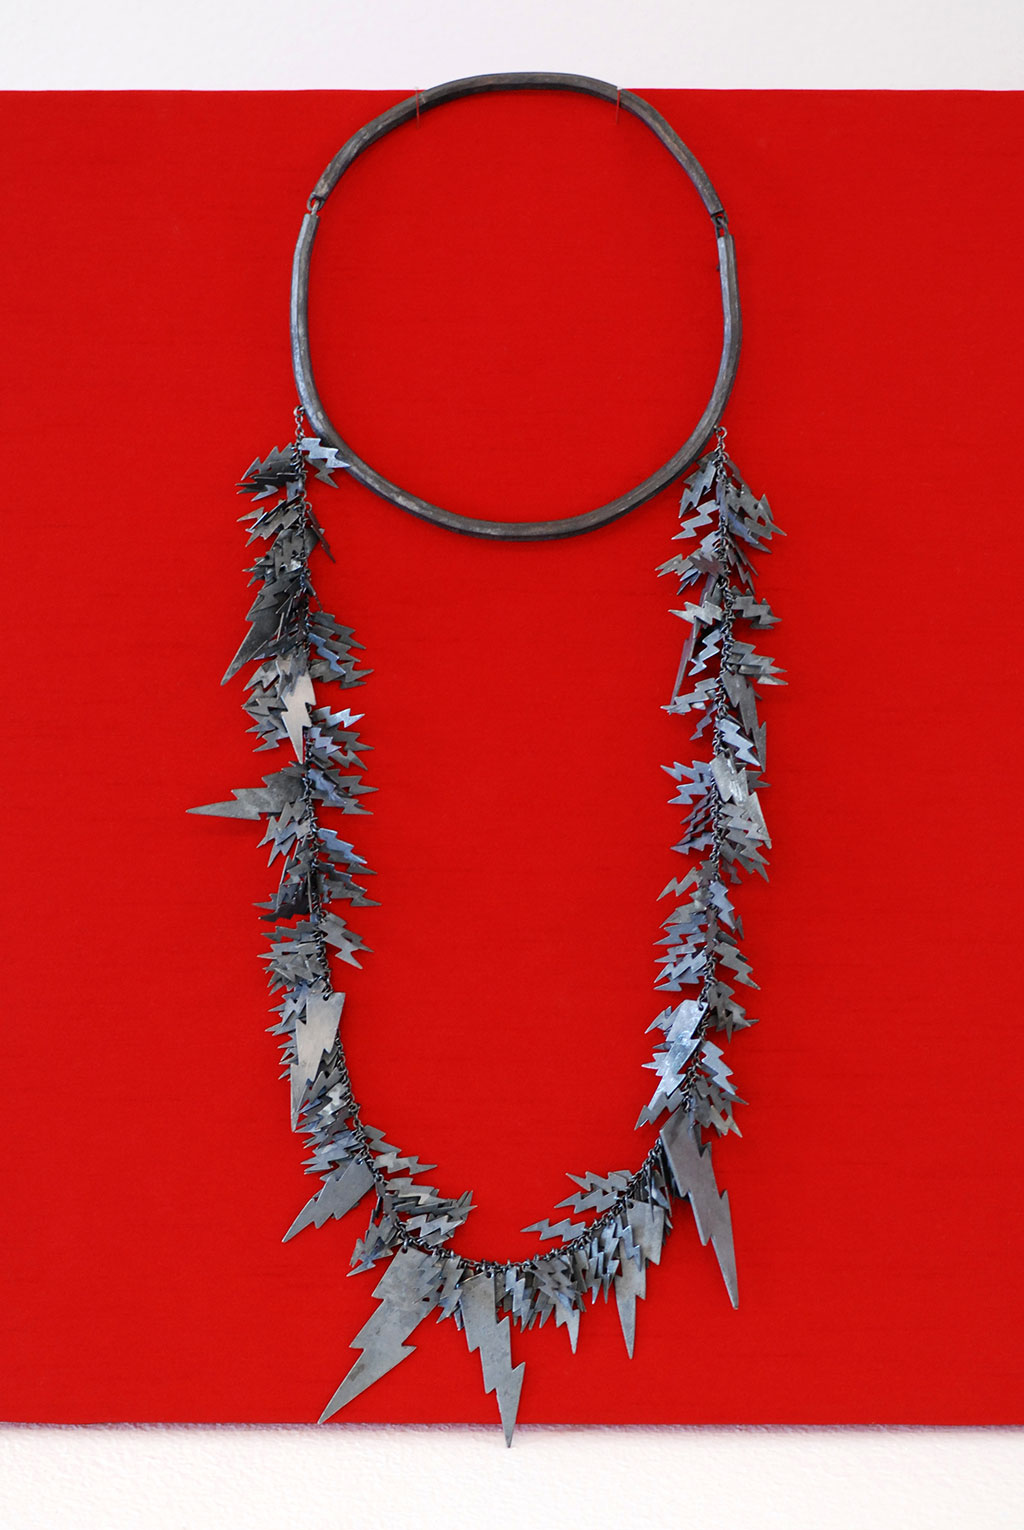 Jana Brevick, Power Supply Necklace, 2015